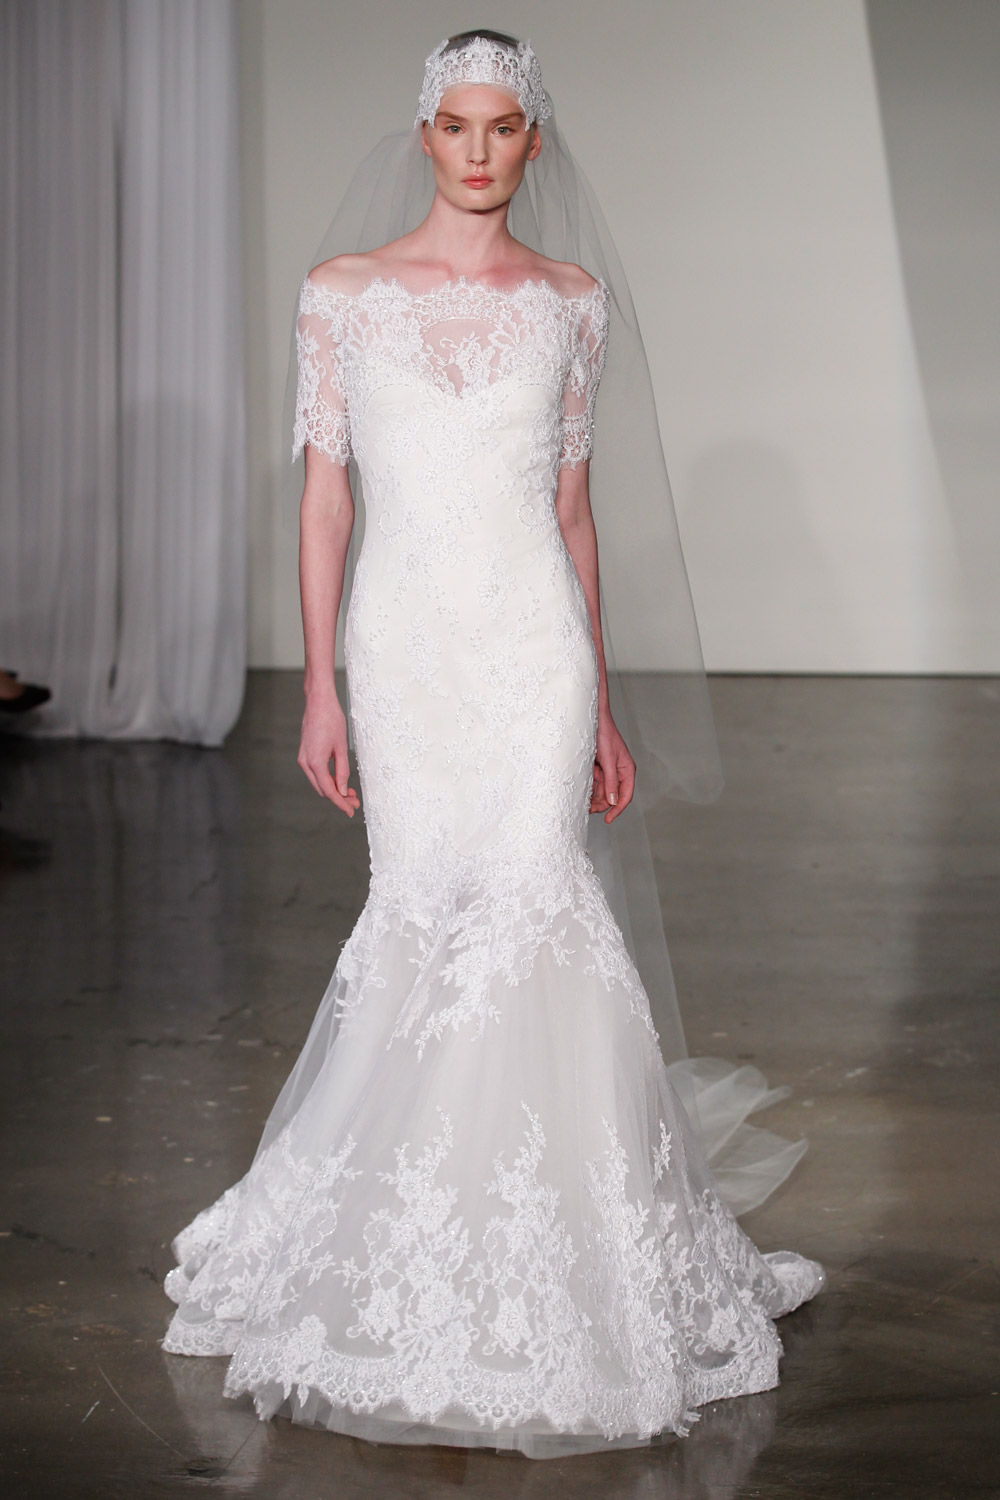 marchesa-wedding-dresses-4-02012014